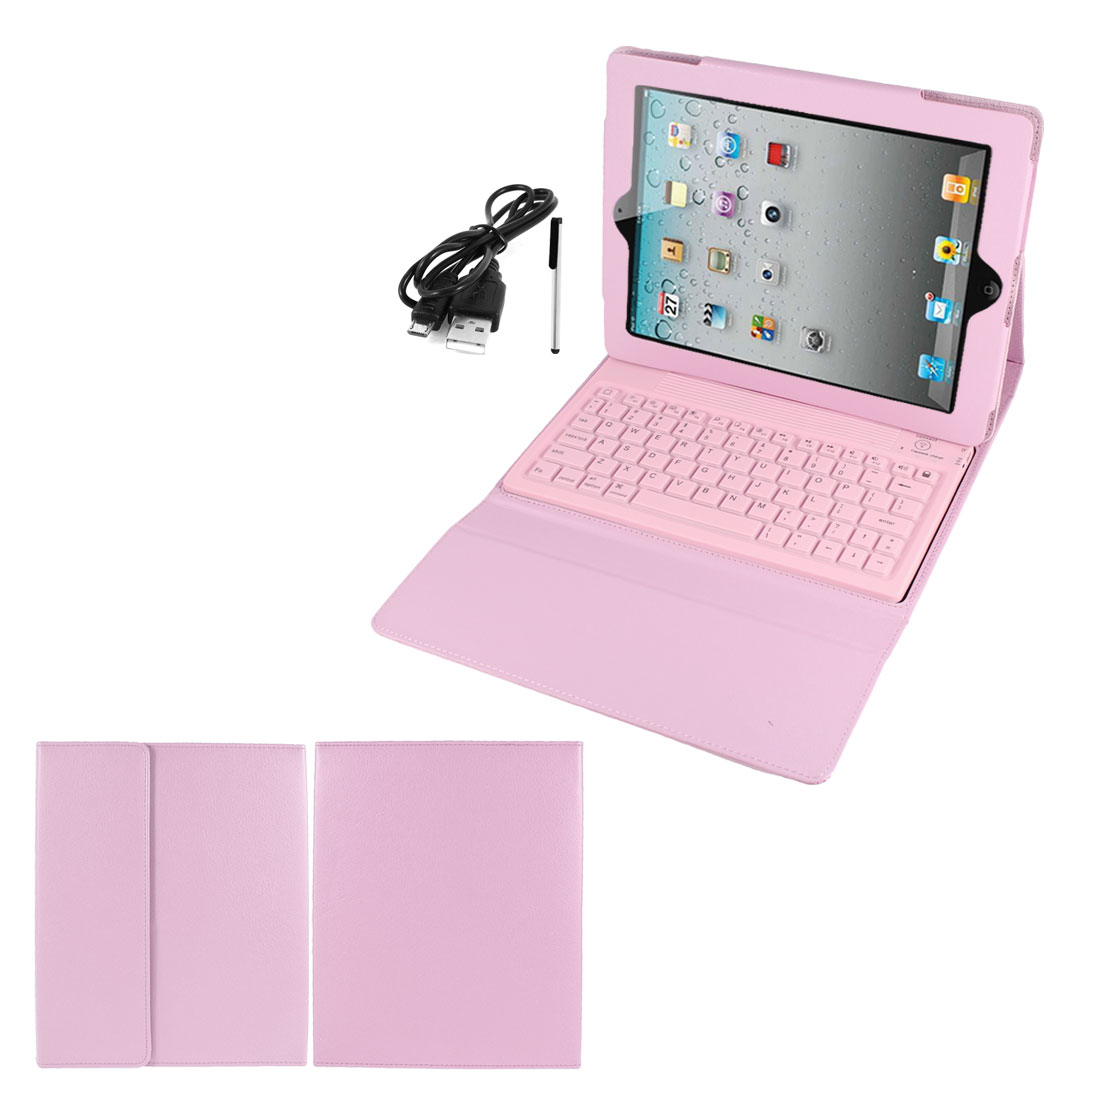 Pink PU Leather Magnetic Closure bluetooth Wireless Silicone Keyboard Stand Case Cover for iPad 2 3 4